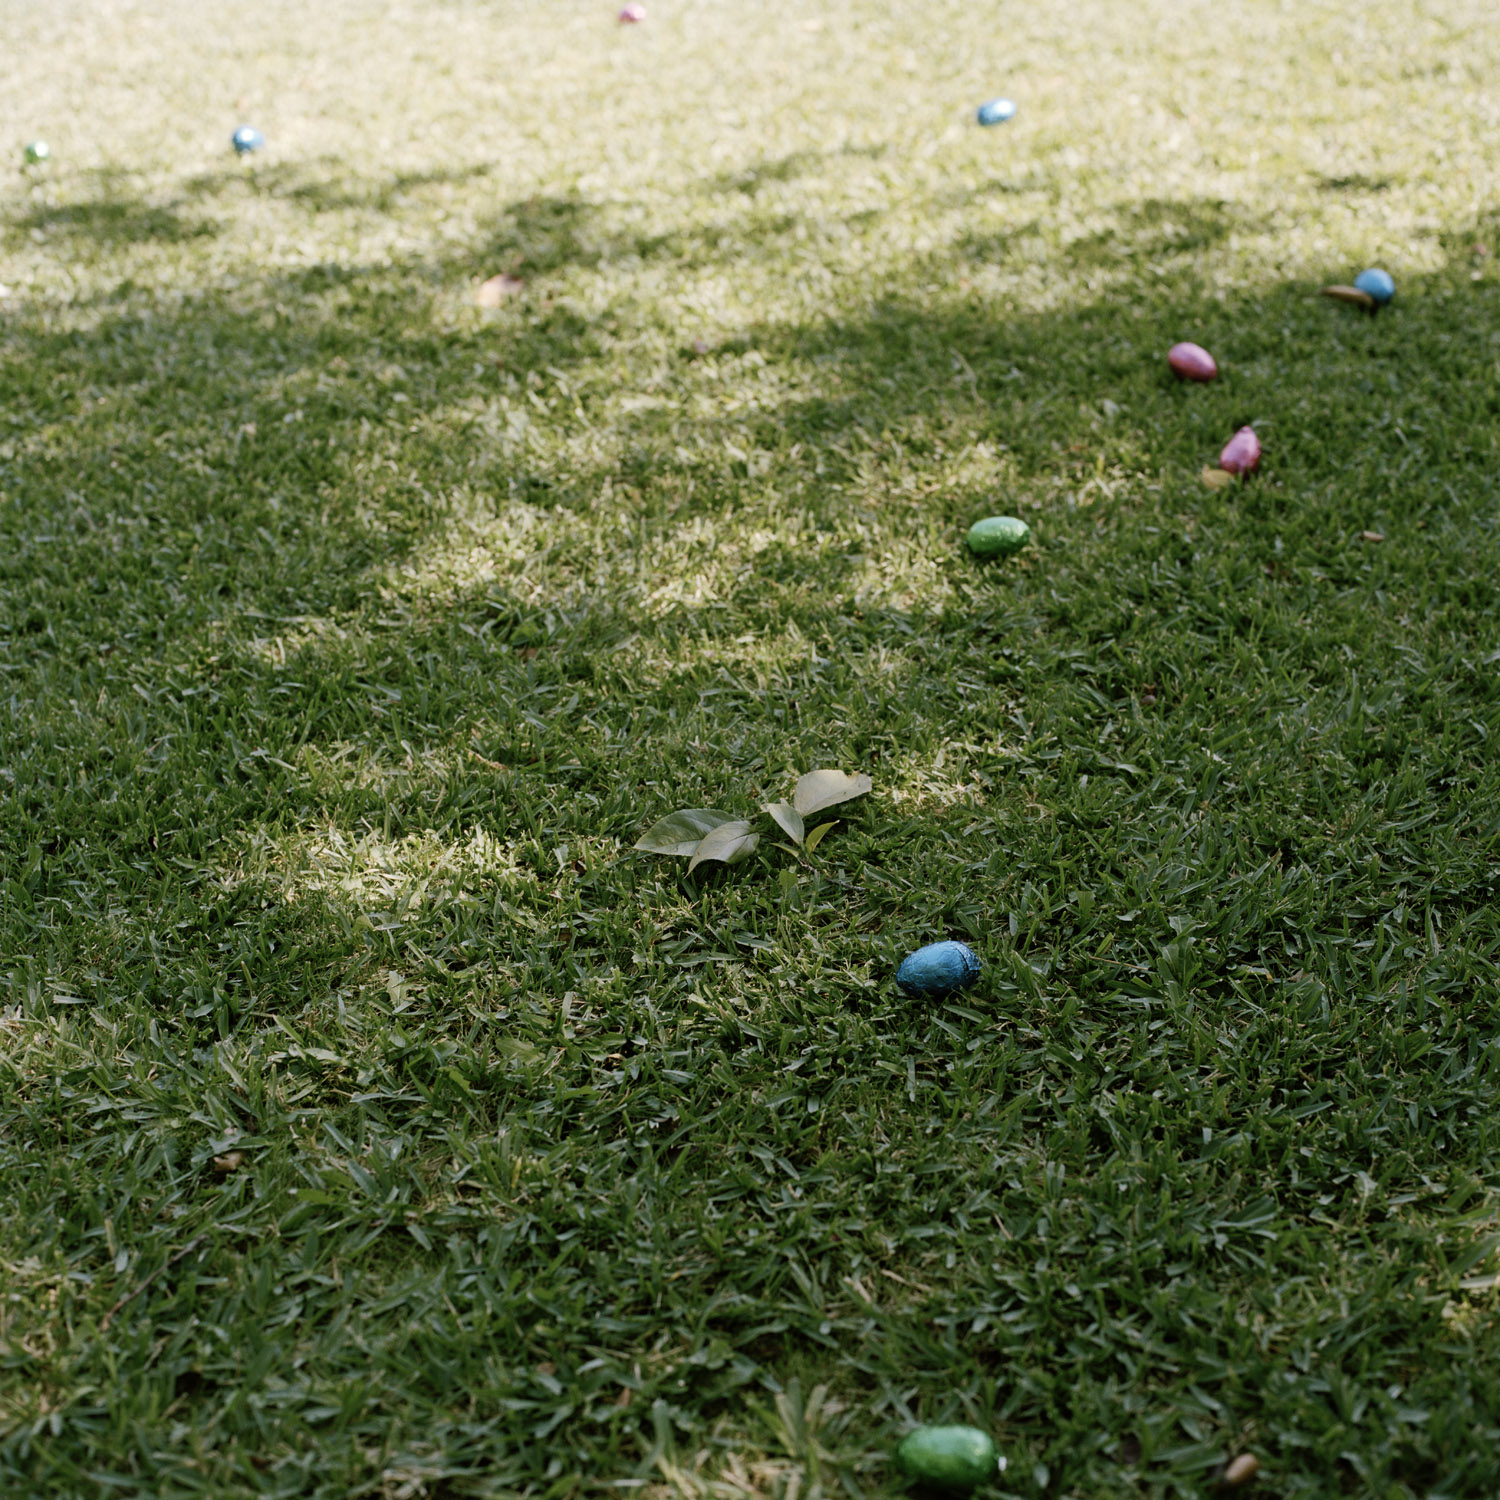 Easter Eggs, 2010, From The Series Touchstones By Abby Storey.